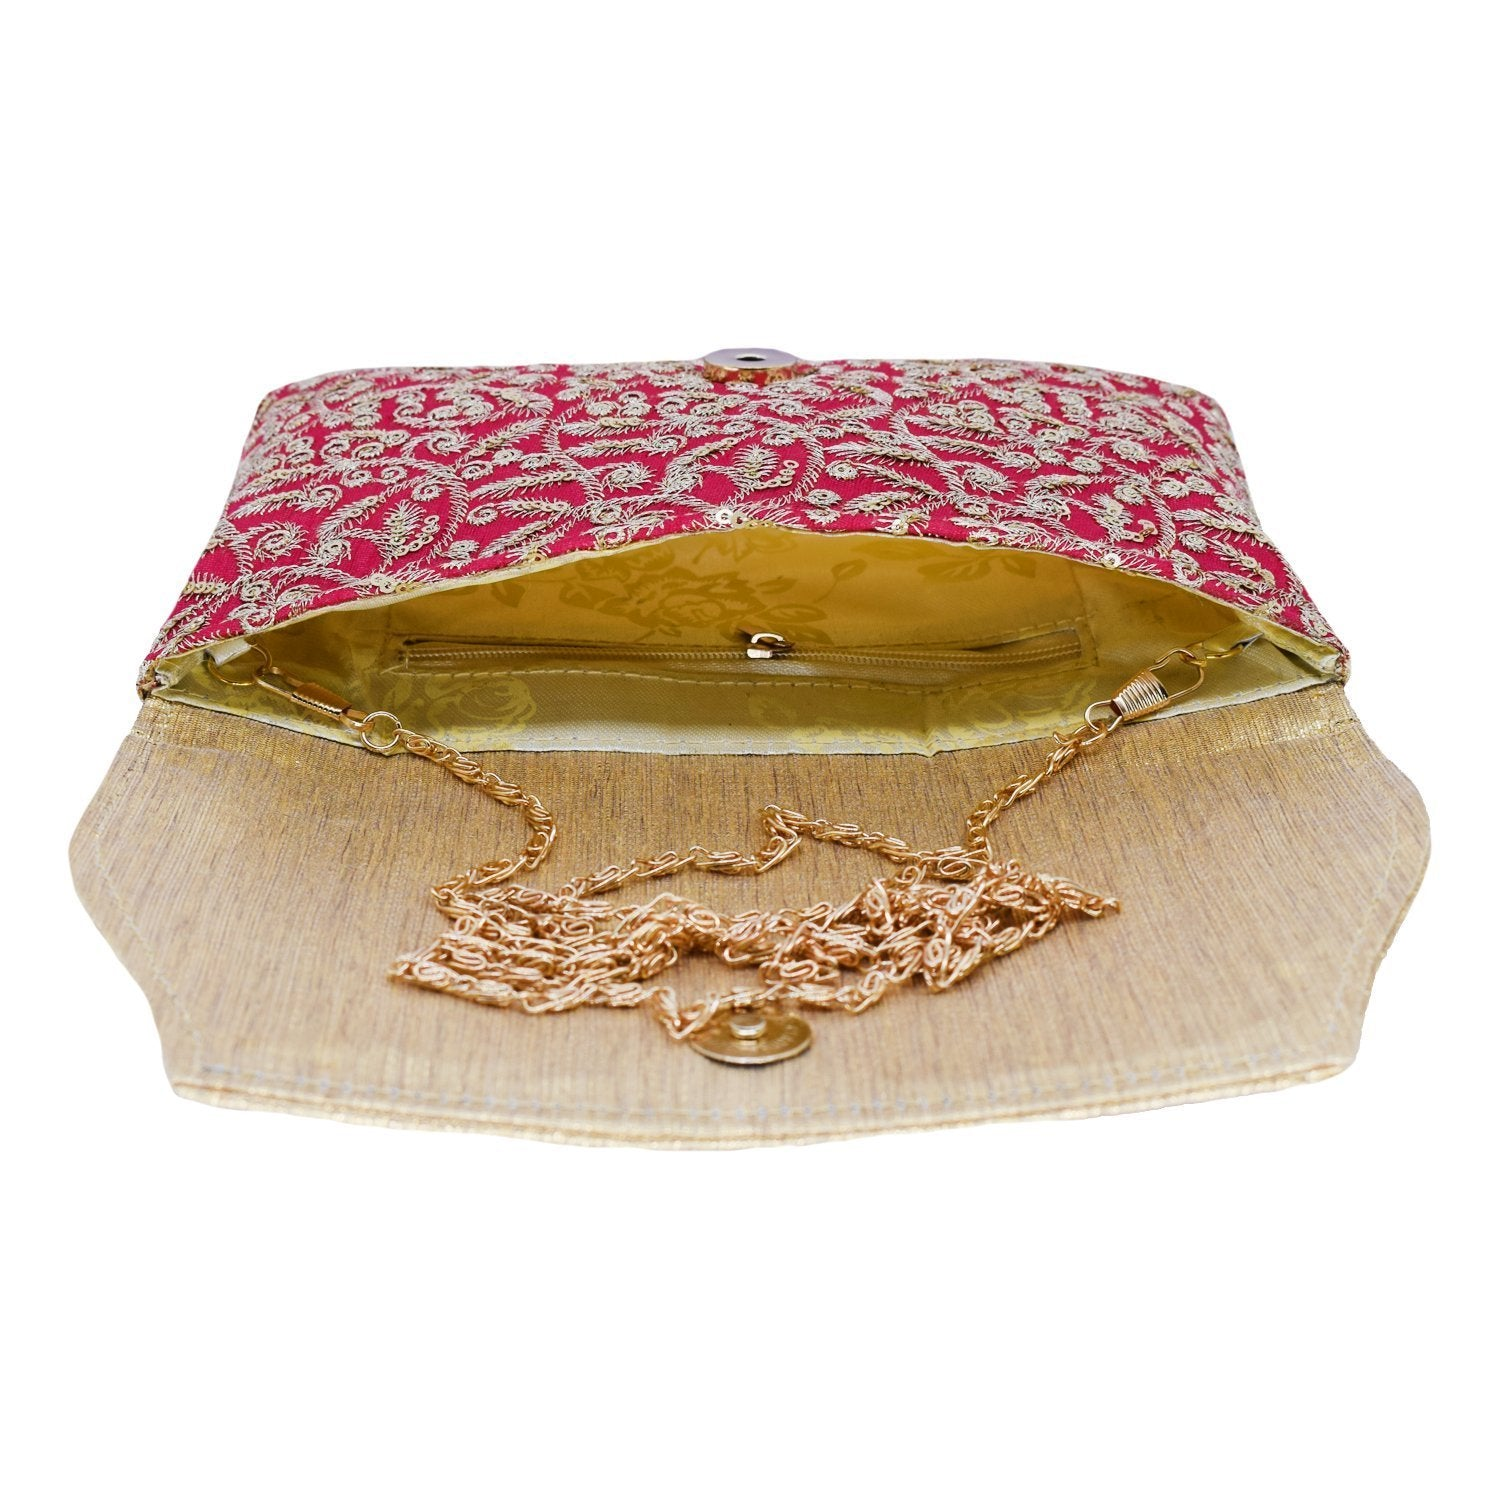 Ethnic  Raw Silk  Clutches with Embroidery Work - Bagaholics Gift